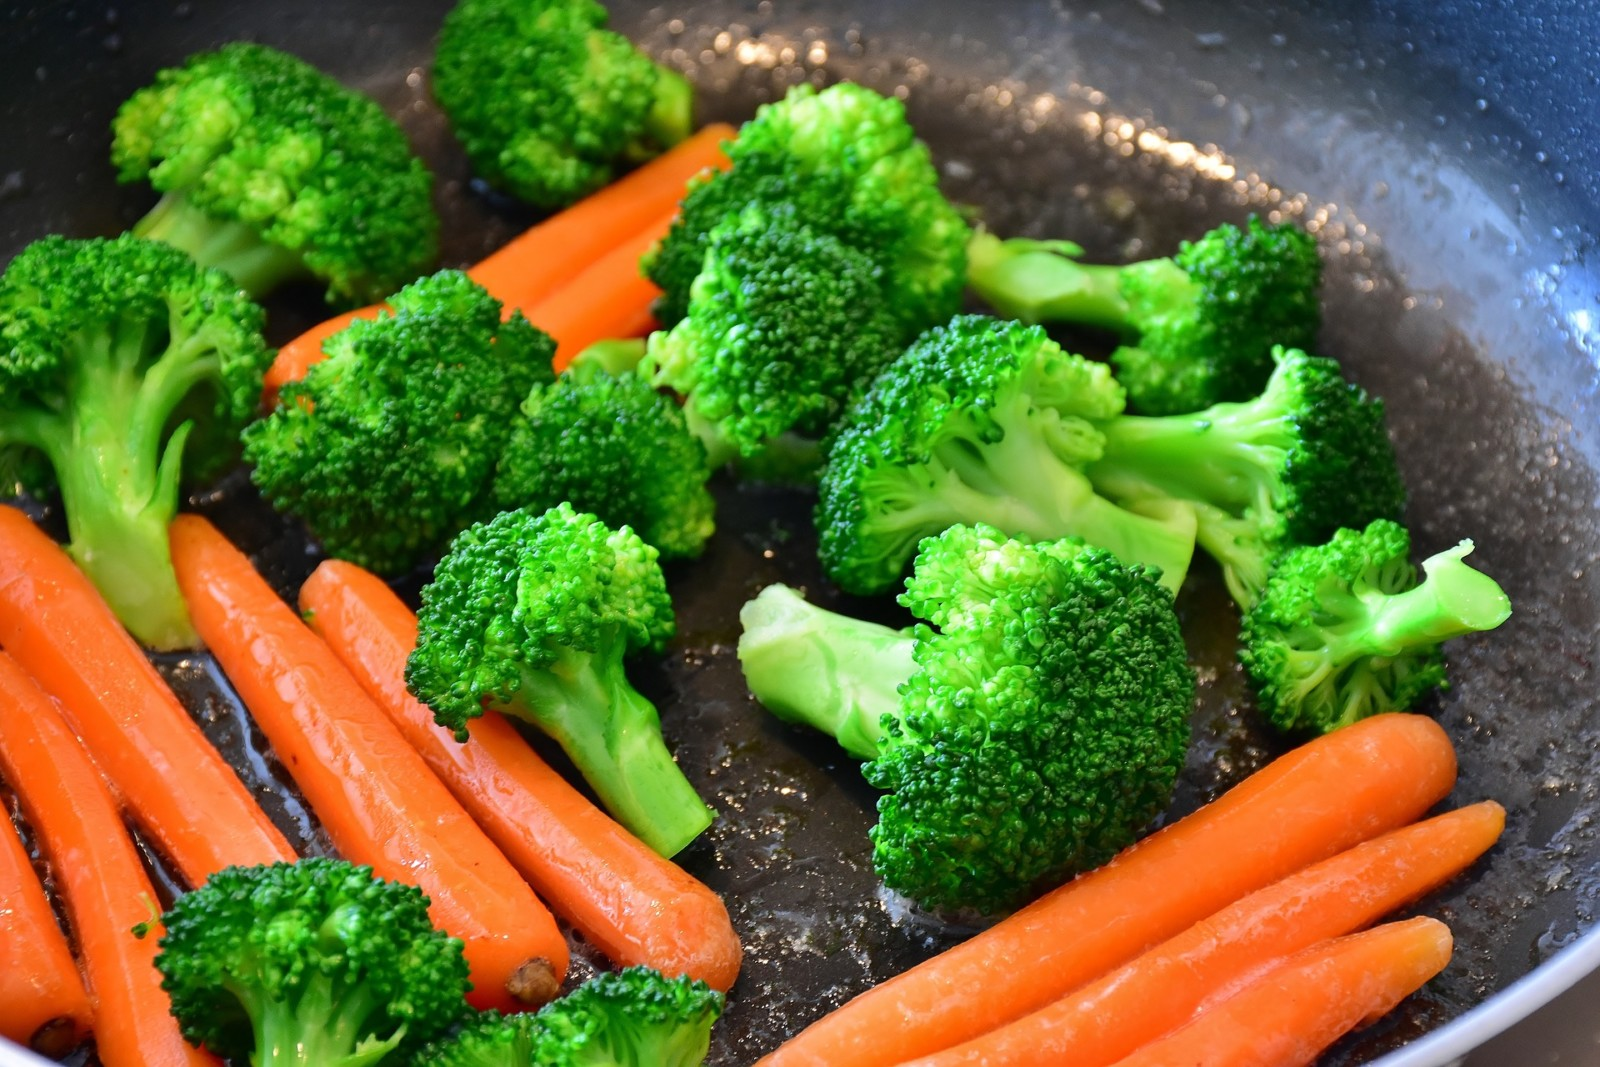 carrots and broccoli cooking